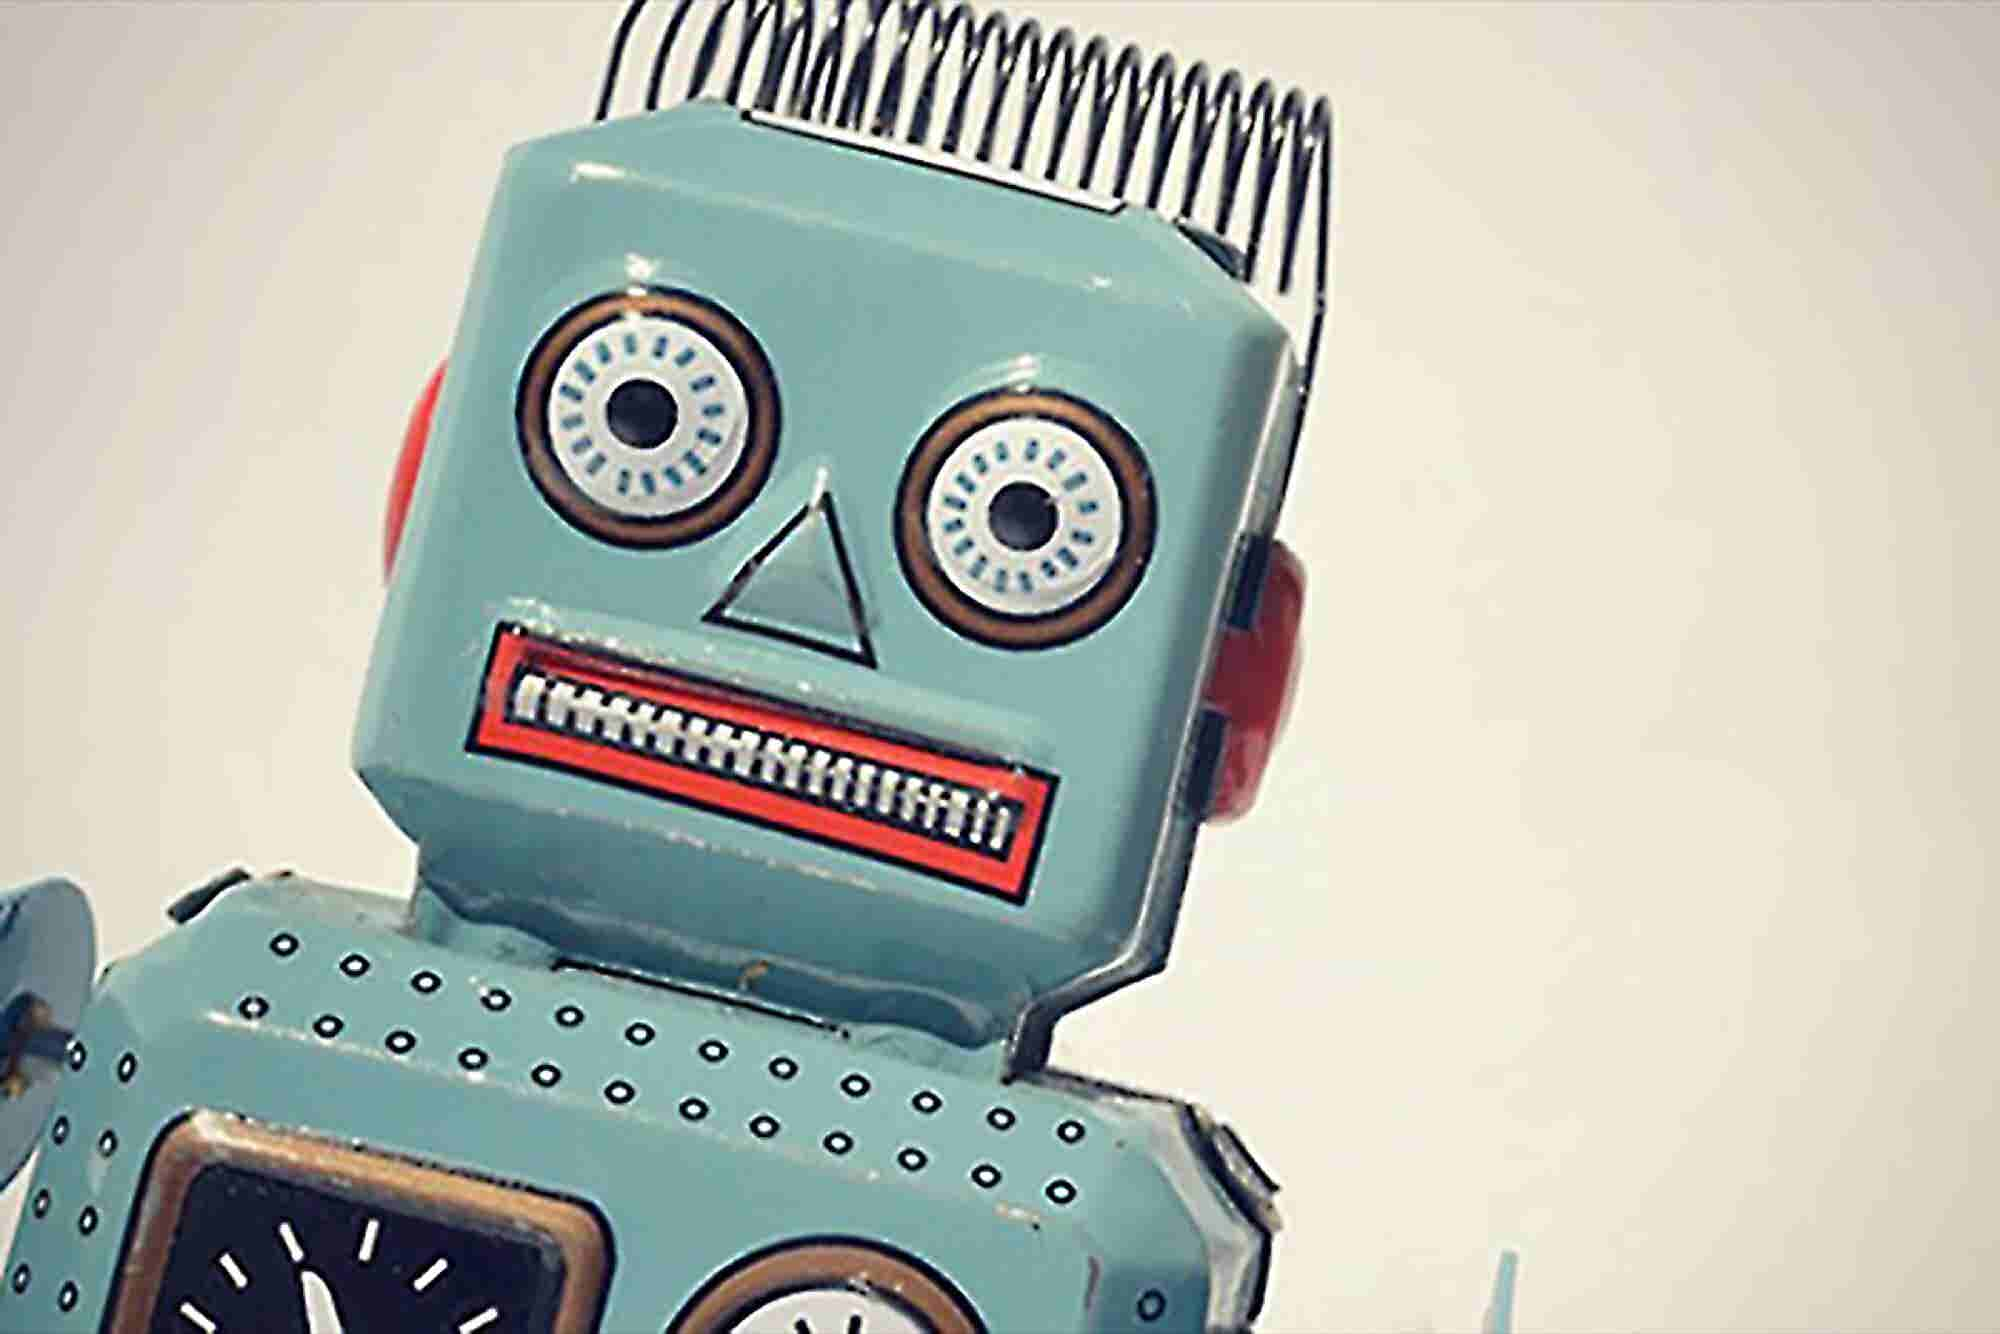 People Prefer Robot Bosses, Study Shows